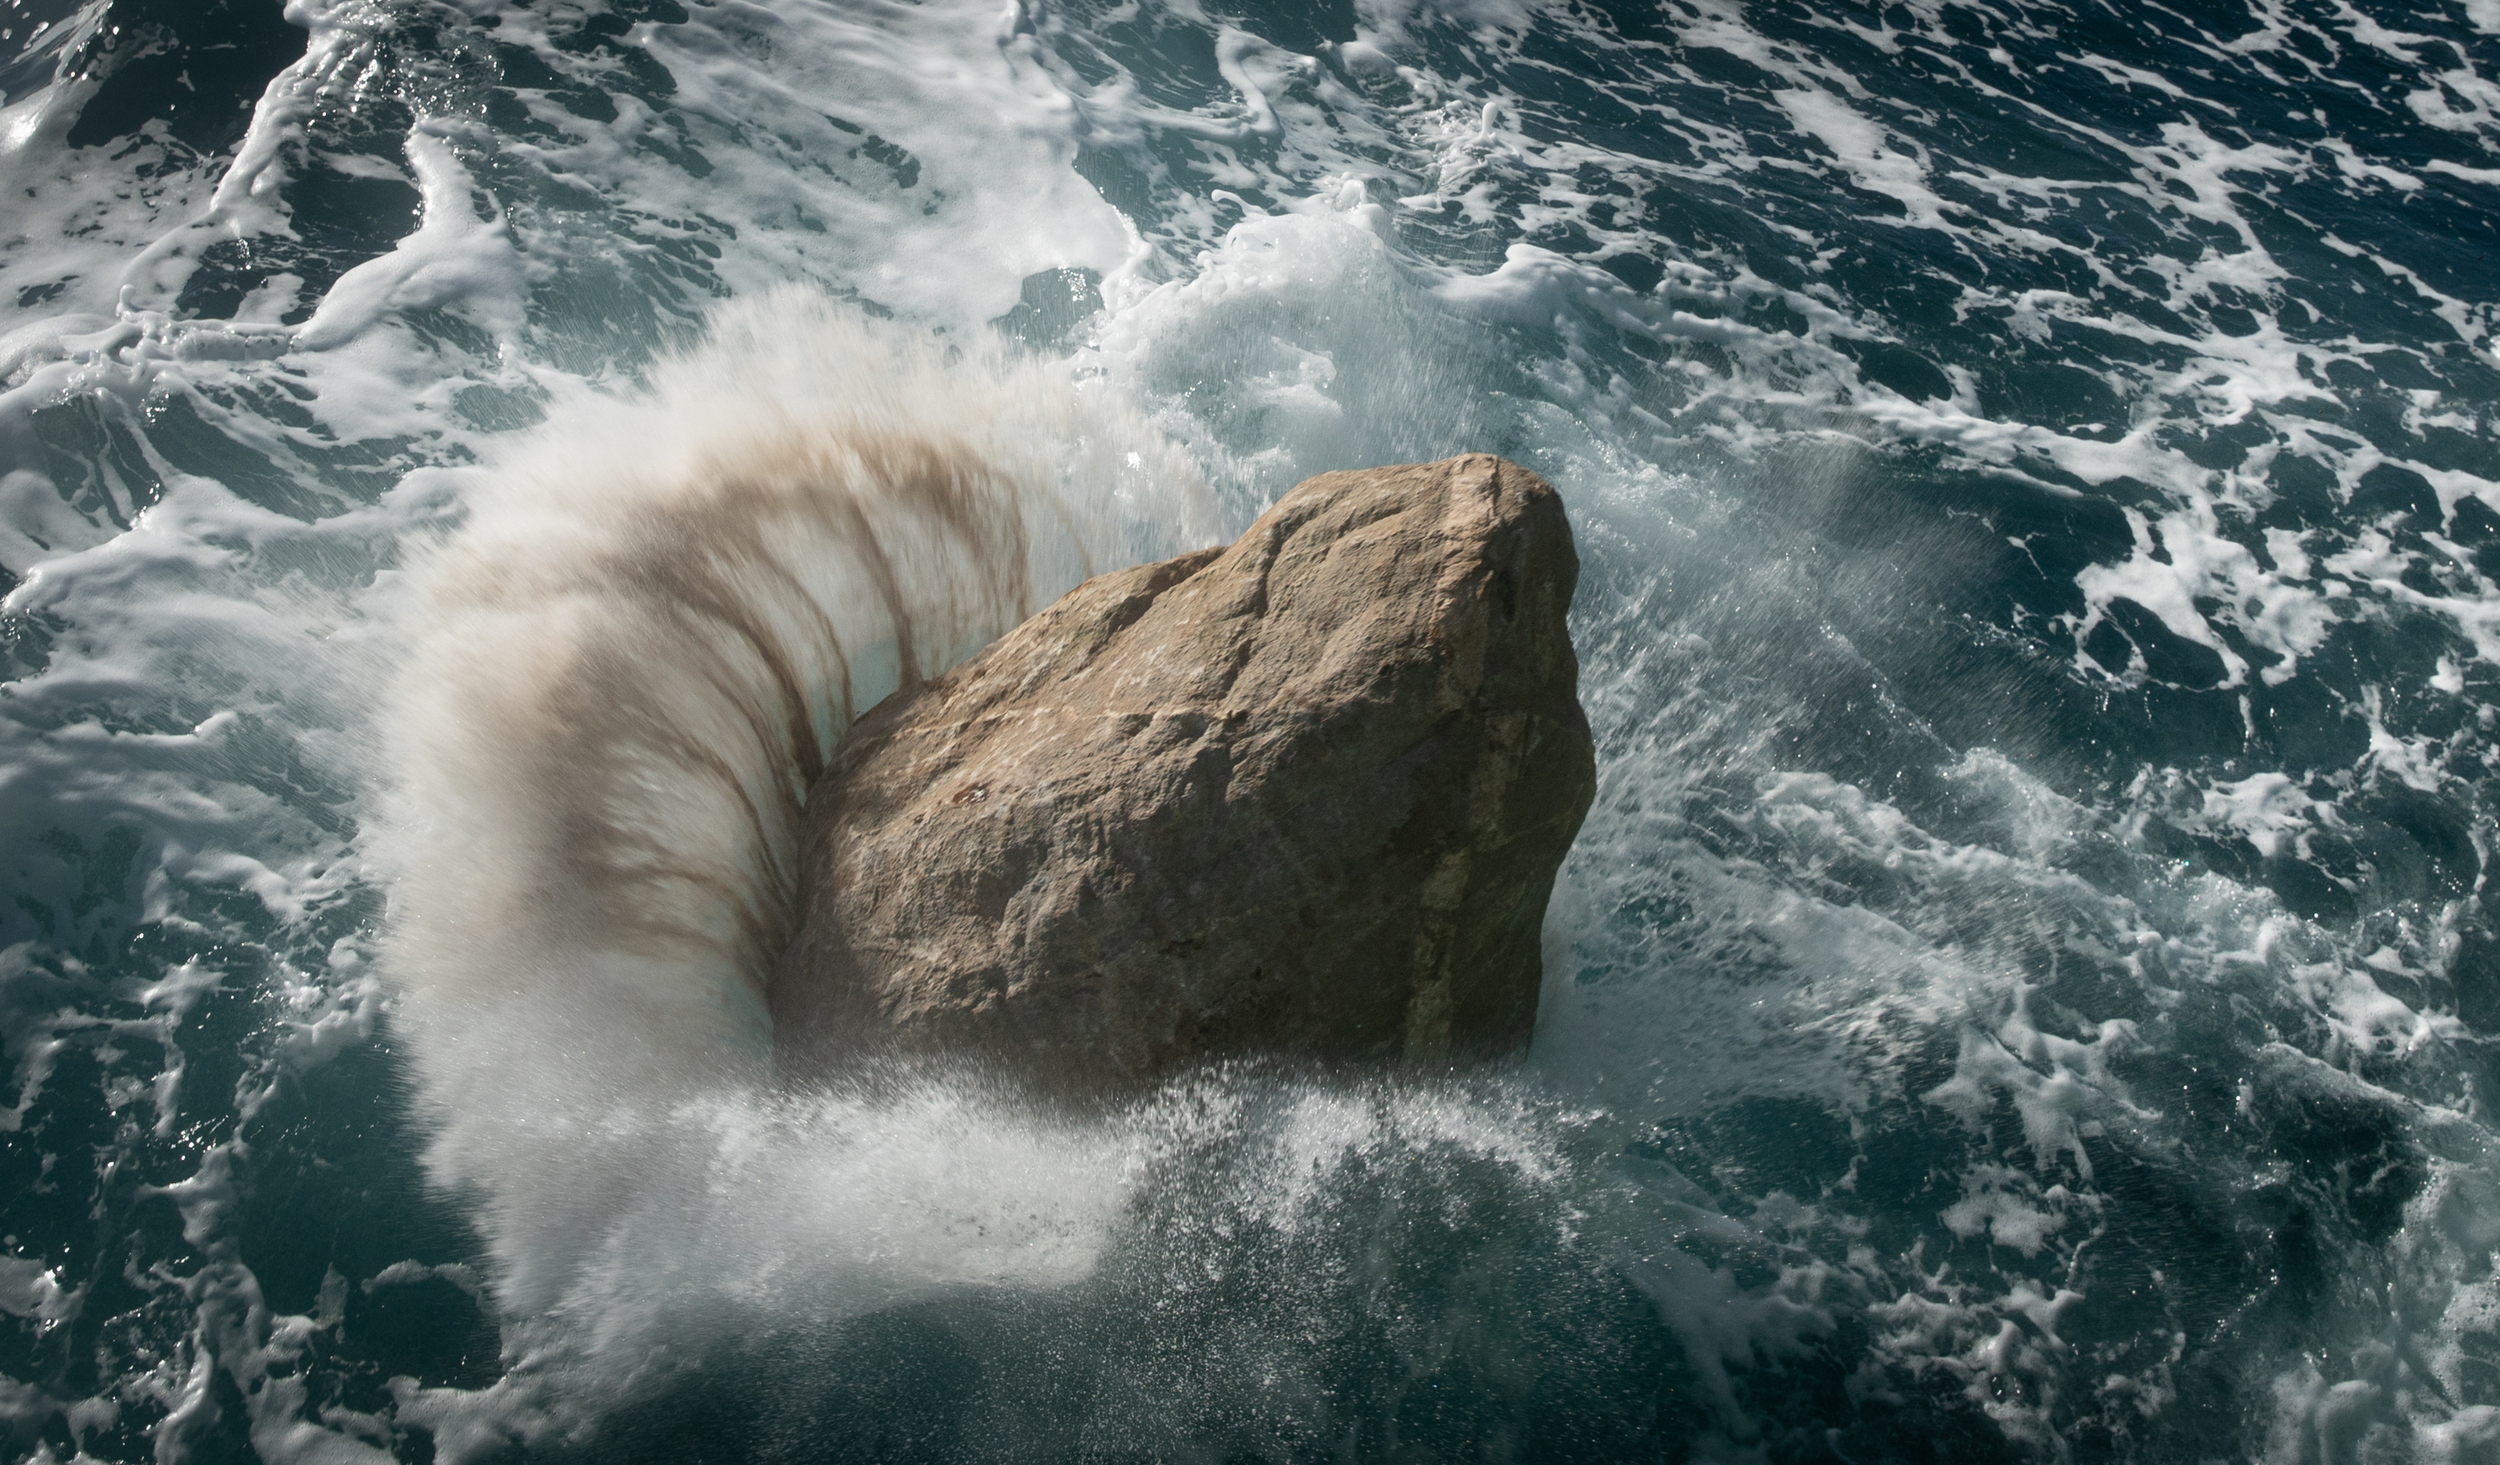 A boulder strikes the surface of the ocean, creating a powerful splash